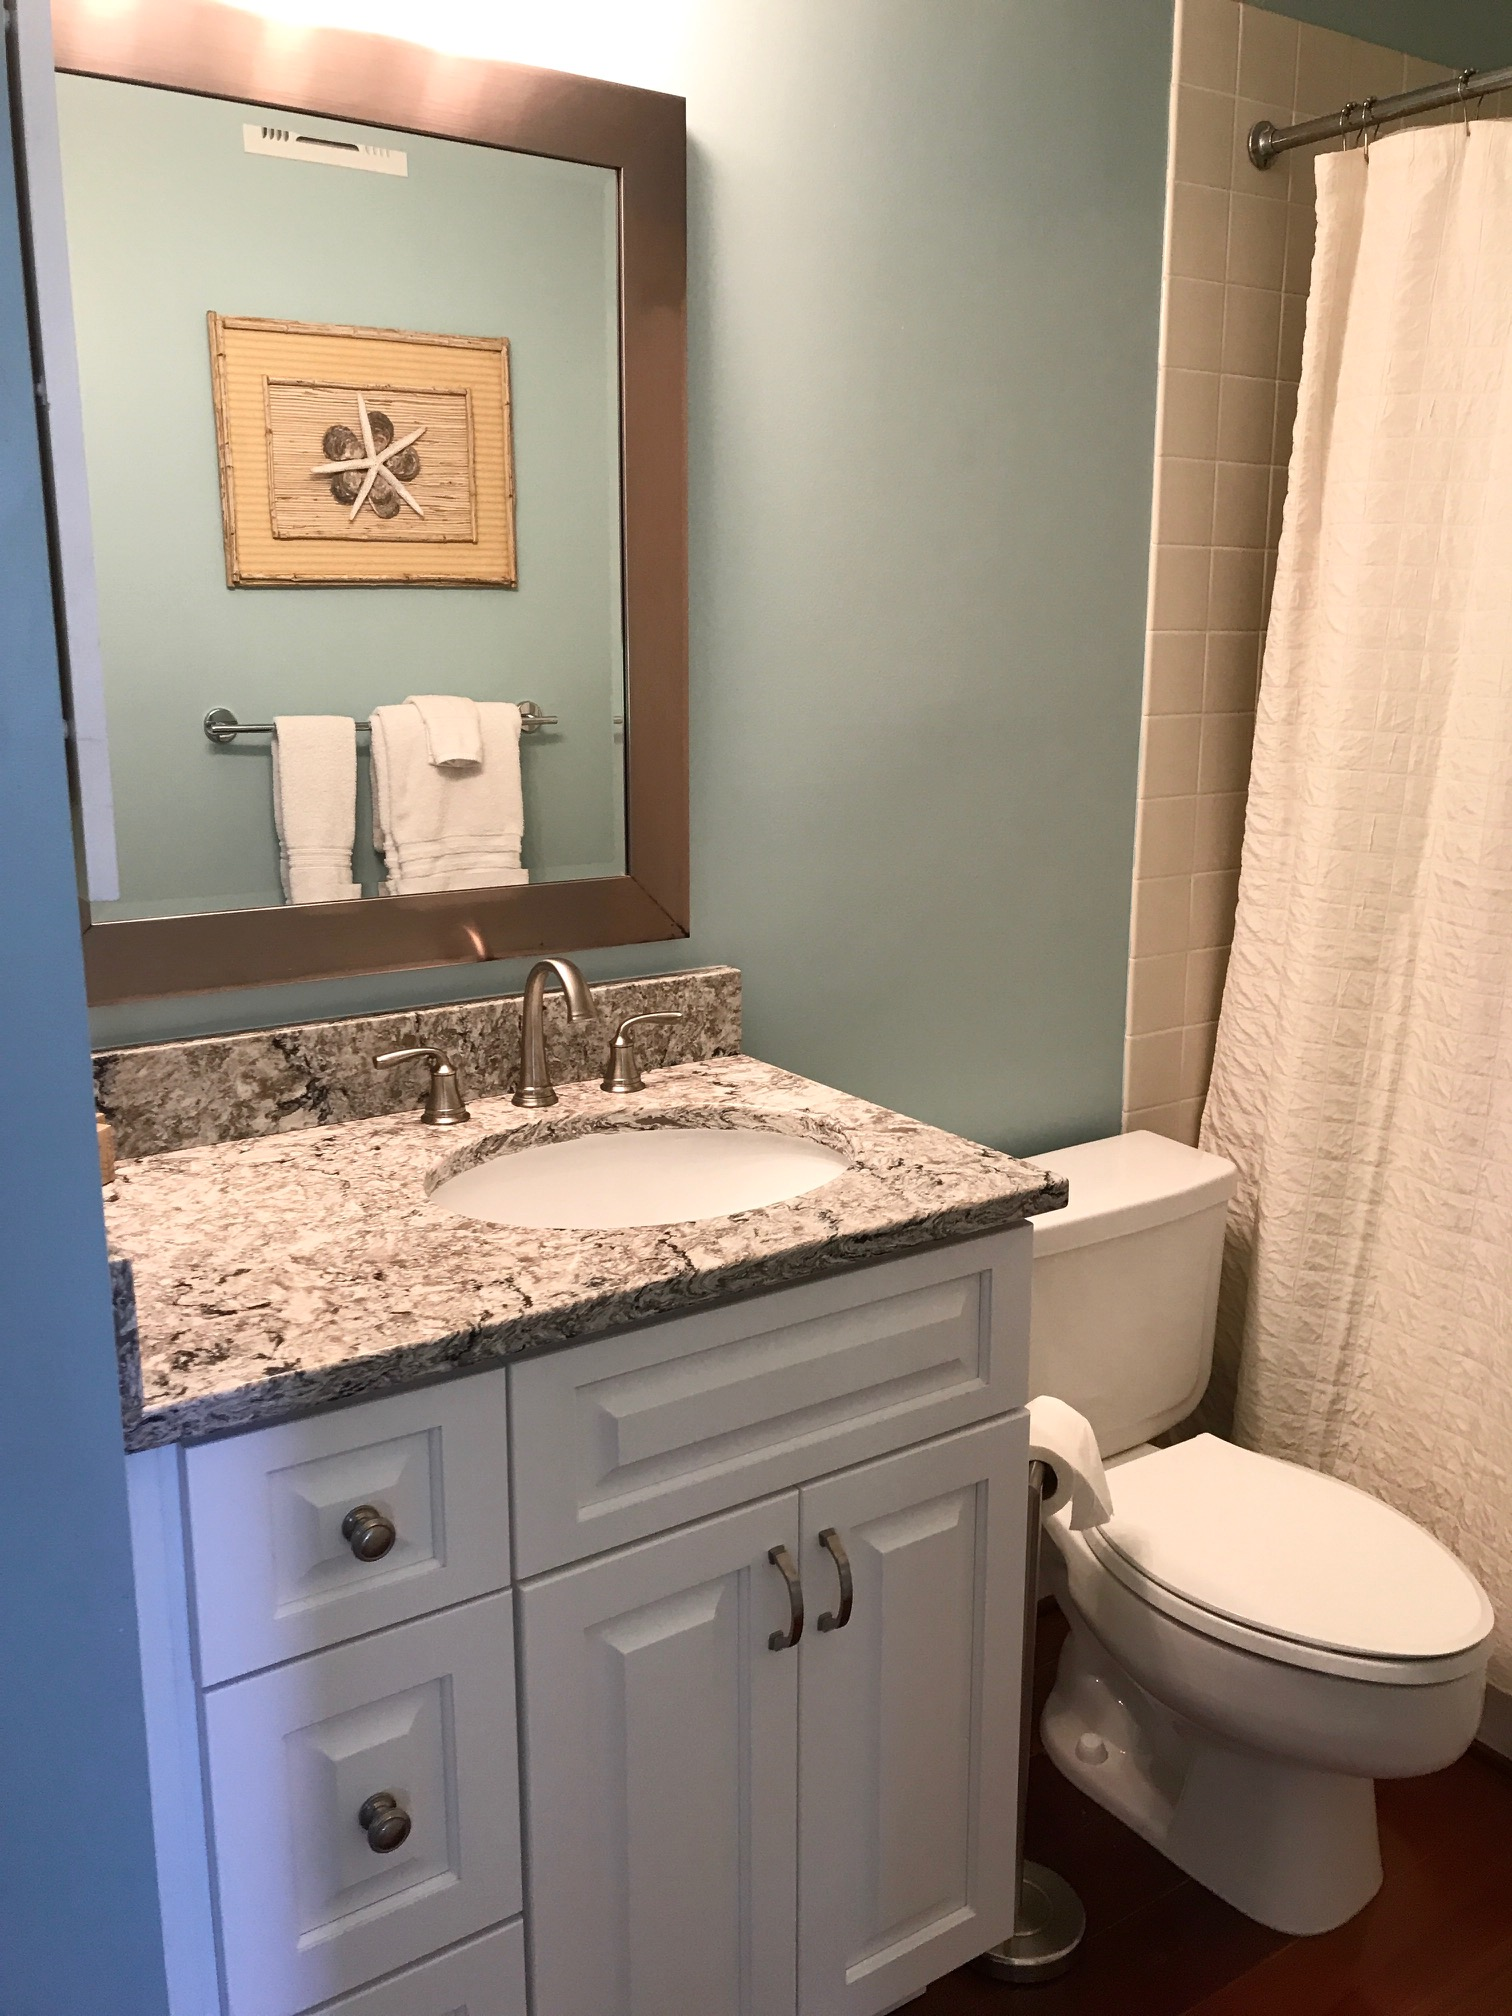 The third bathroom opens to the downstairs hallway and the 3rd bedroom.